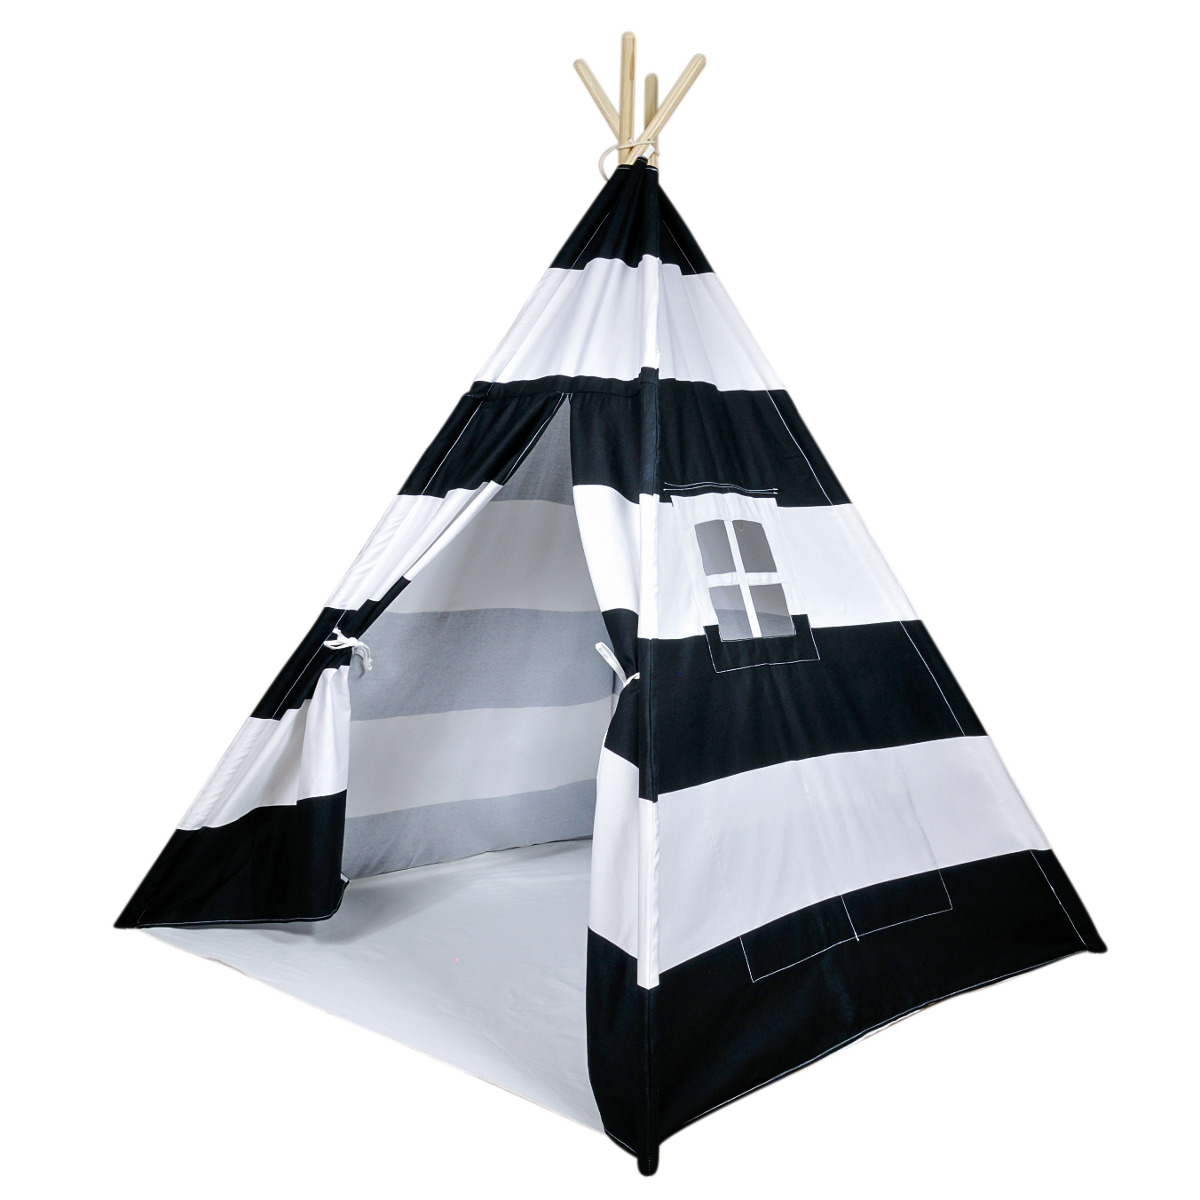 Home / Shop / Pretend Play / A Mustard Seed Toys Black Striped Canvas Teepee Tent No Added Chemicals Includes Carrying Case Black Stripes Cotton Canvas  sc 1 st  A Mustard Seed Toys & A Mustard Seed Toys Black Striped Canvas Teepee Tent No Added ...